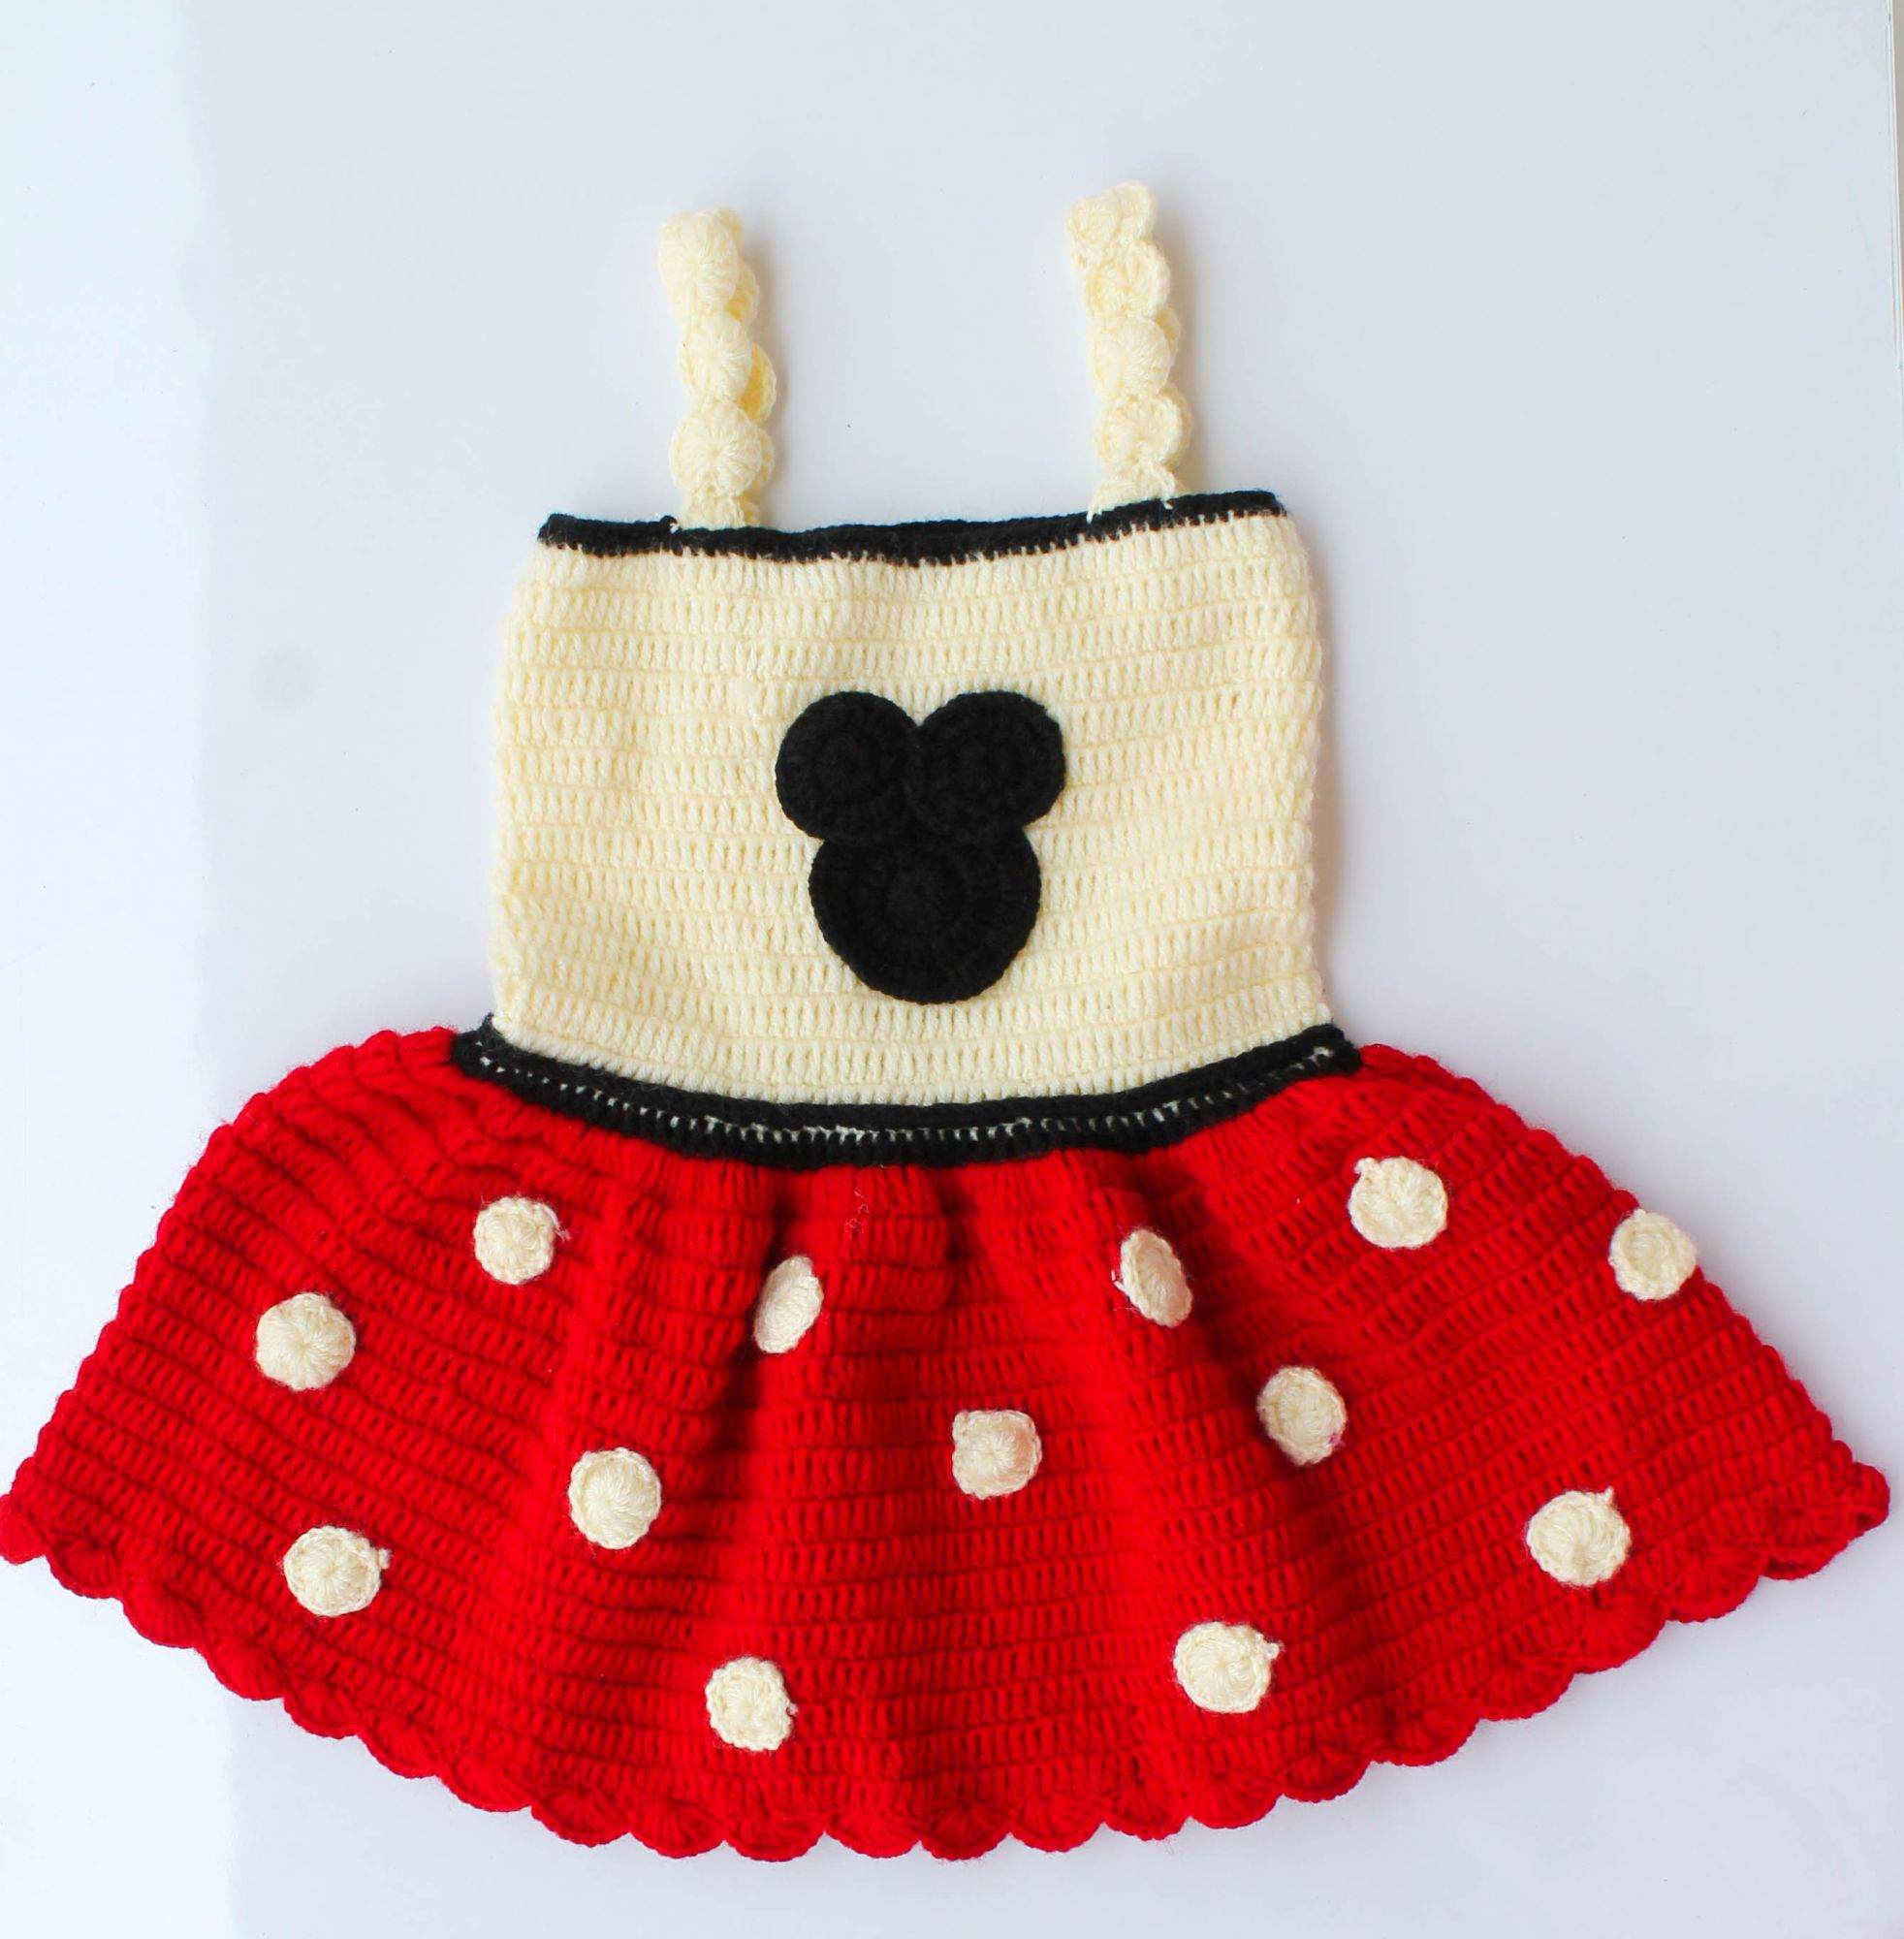 Woonie Handmade Woolen Strap Red and Cream Frock